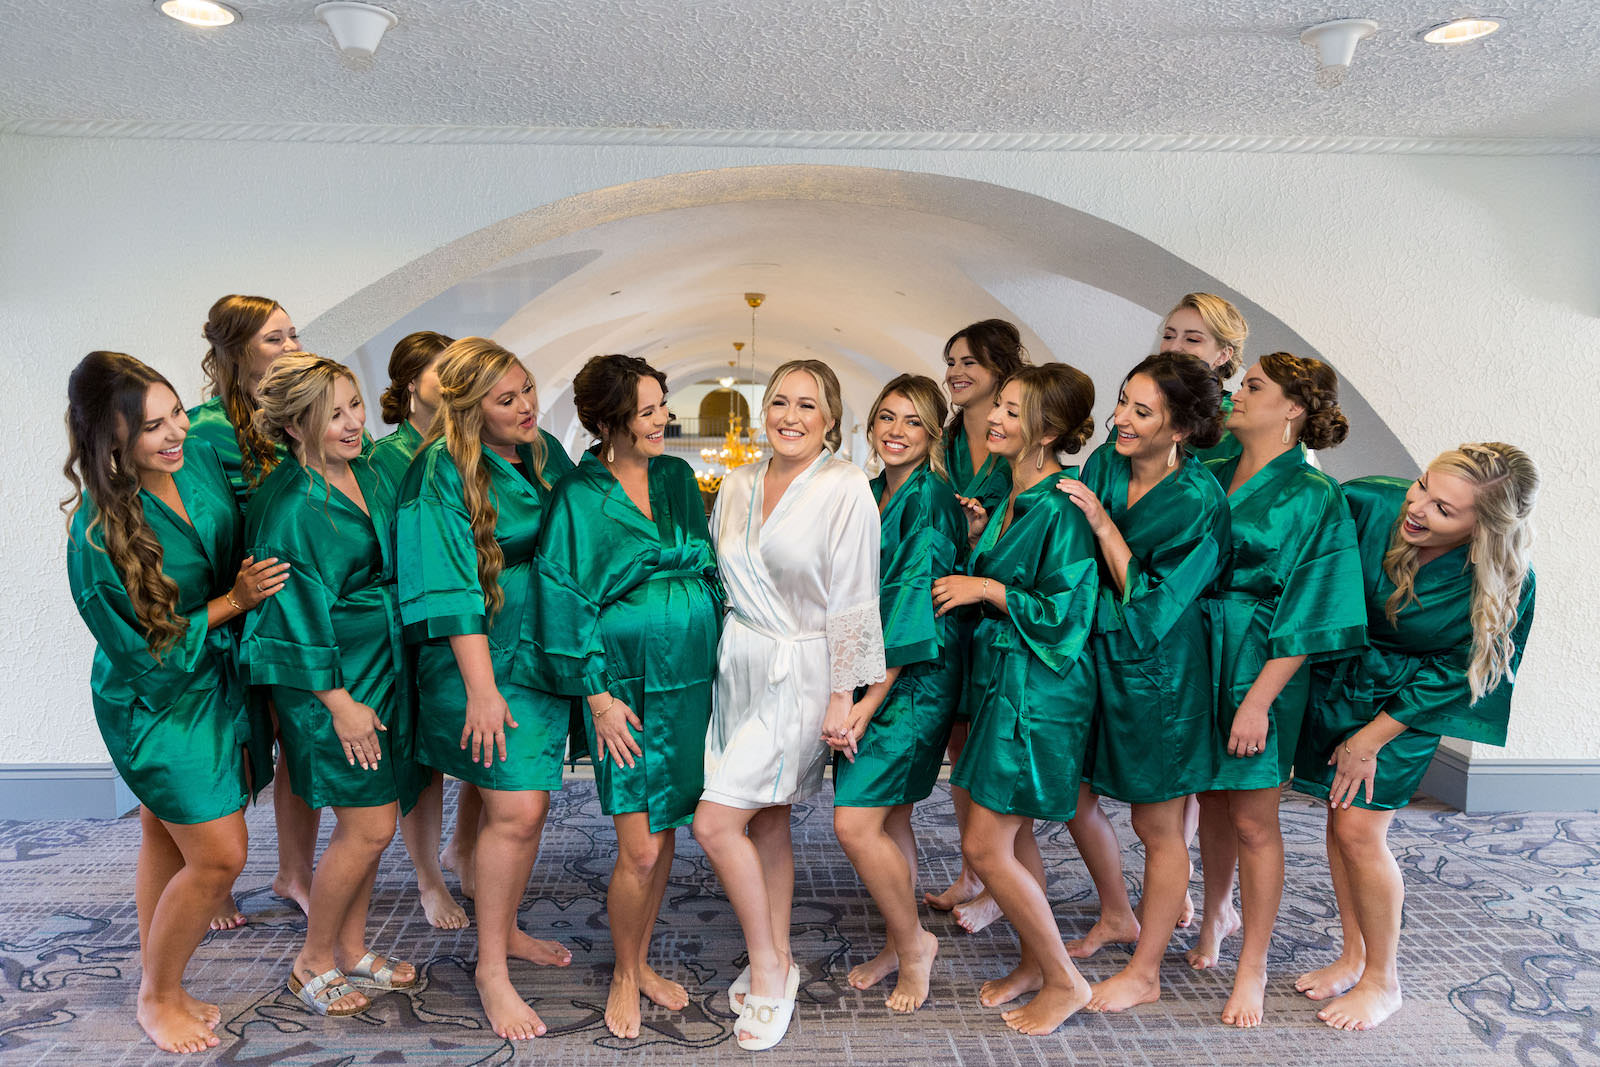 Bride in White Getting Ready Robe, Bridesmaids in Emerald Green Robes